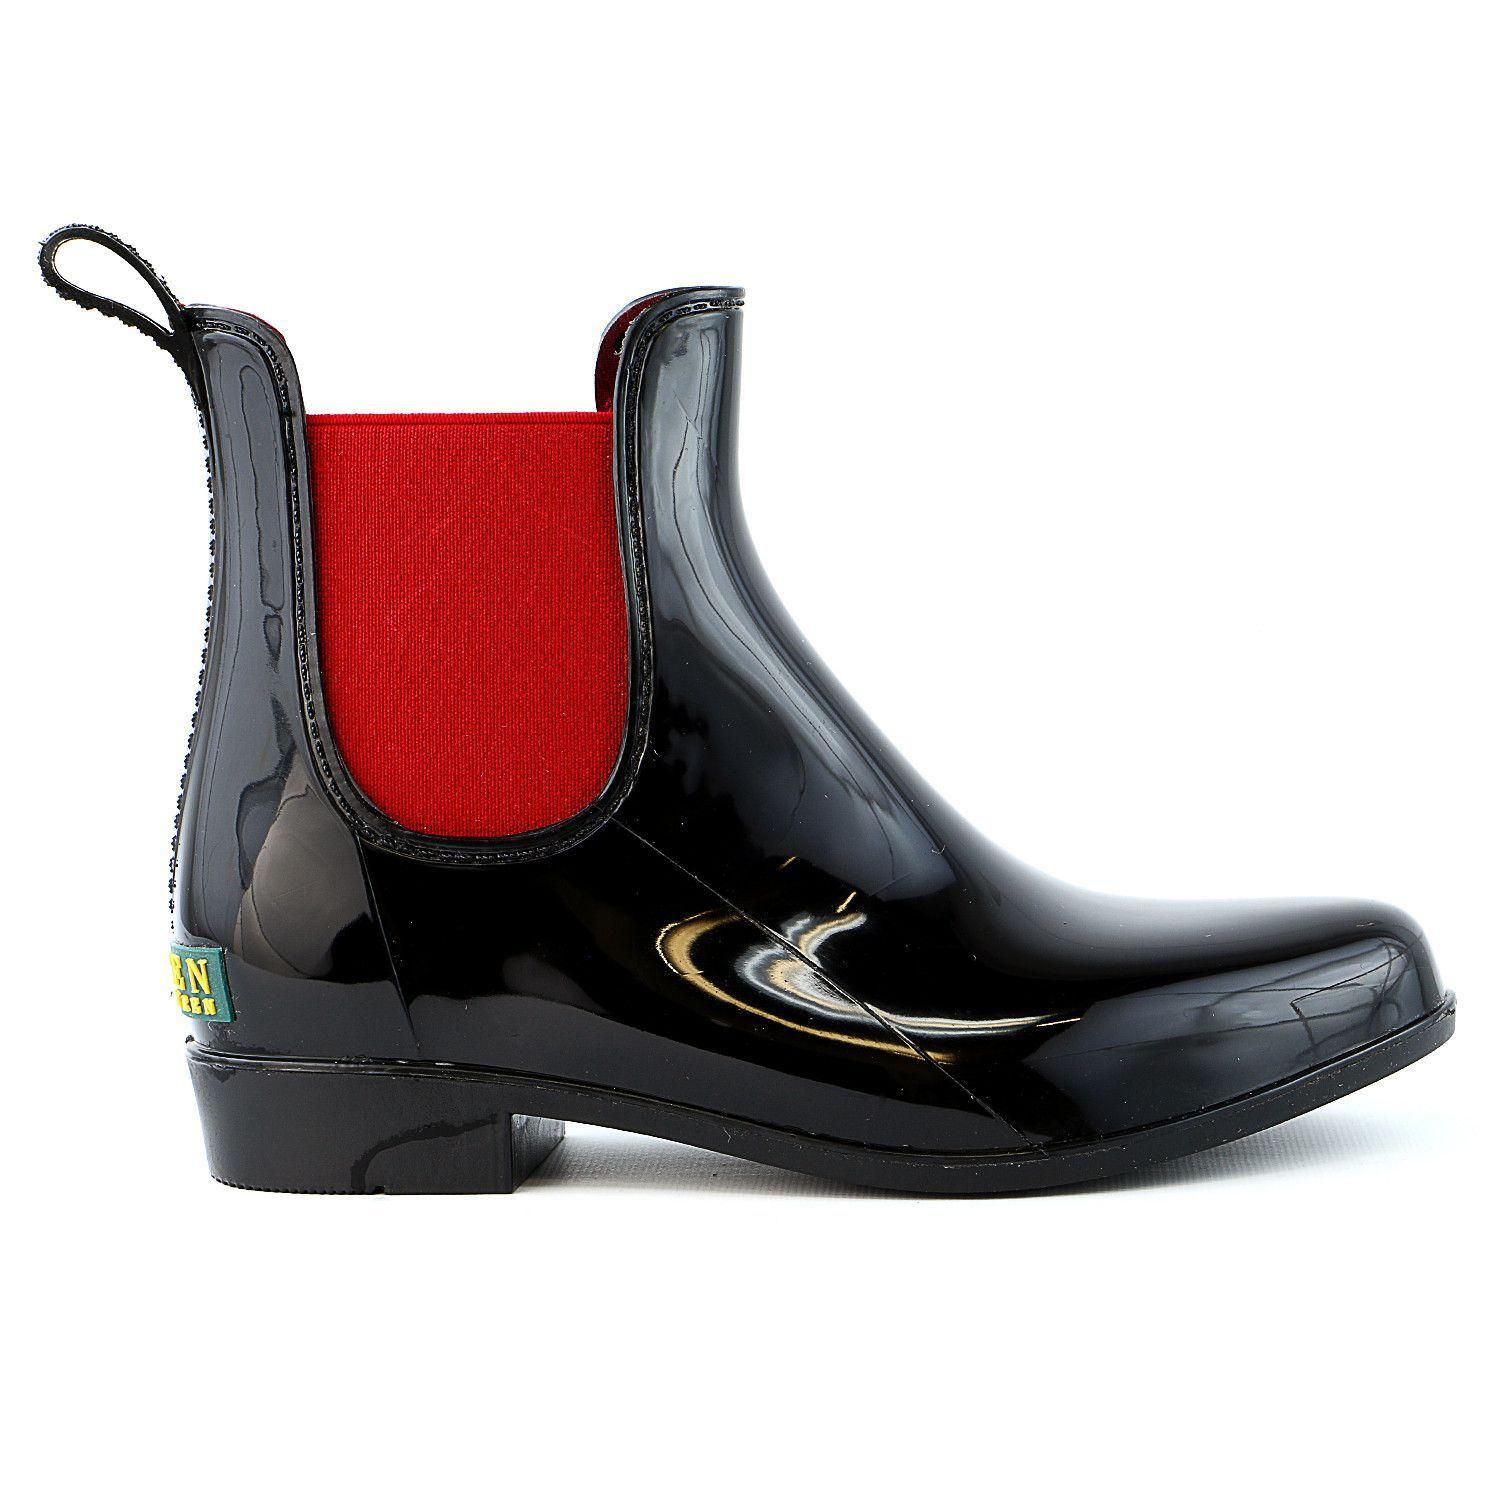 1d65e7c0ea Make a splash in your wardrobe this season with these rain boots from LAUREN  by Ralph Lauren!